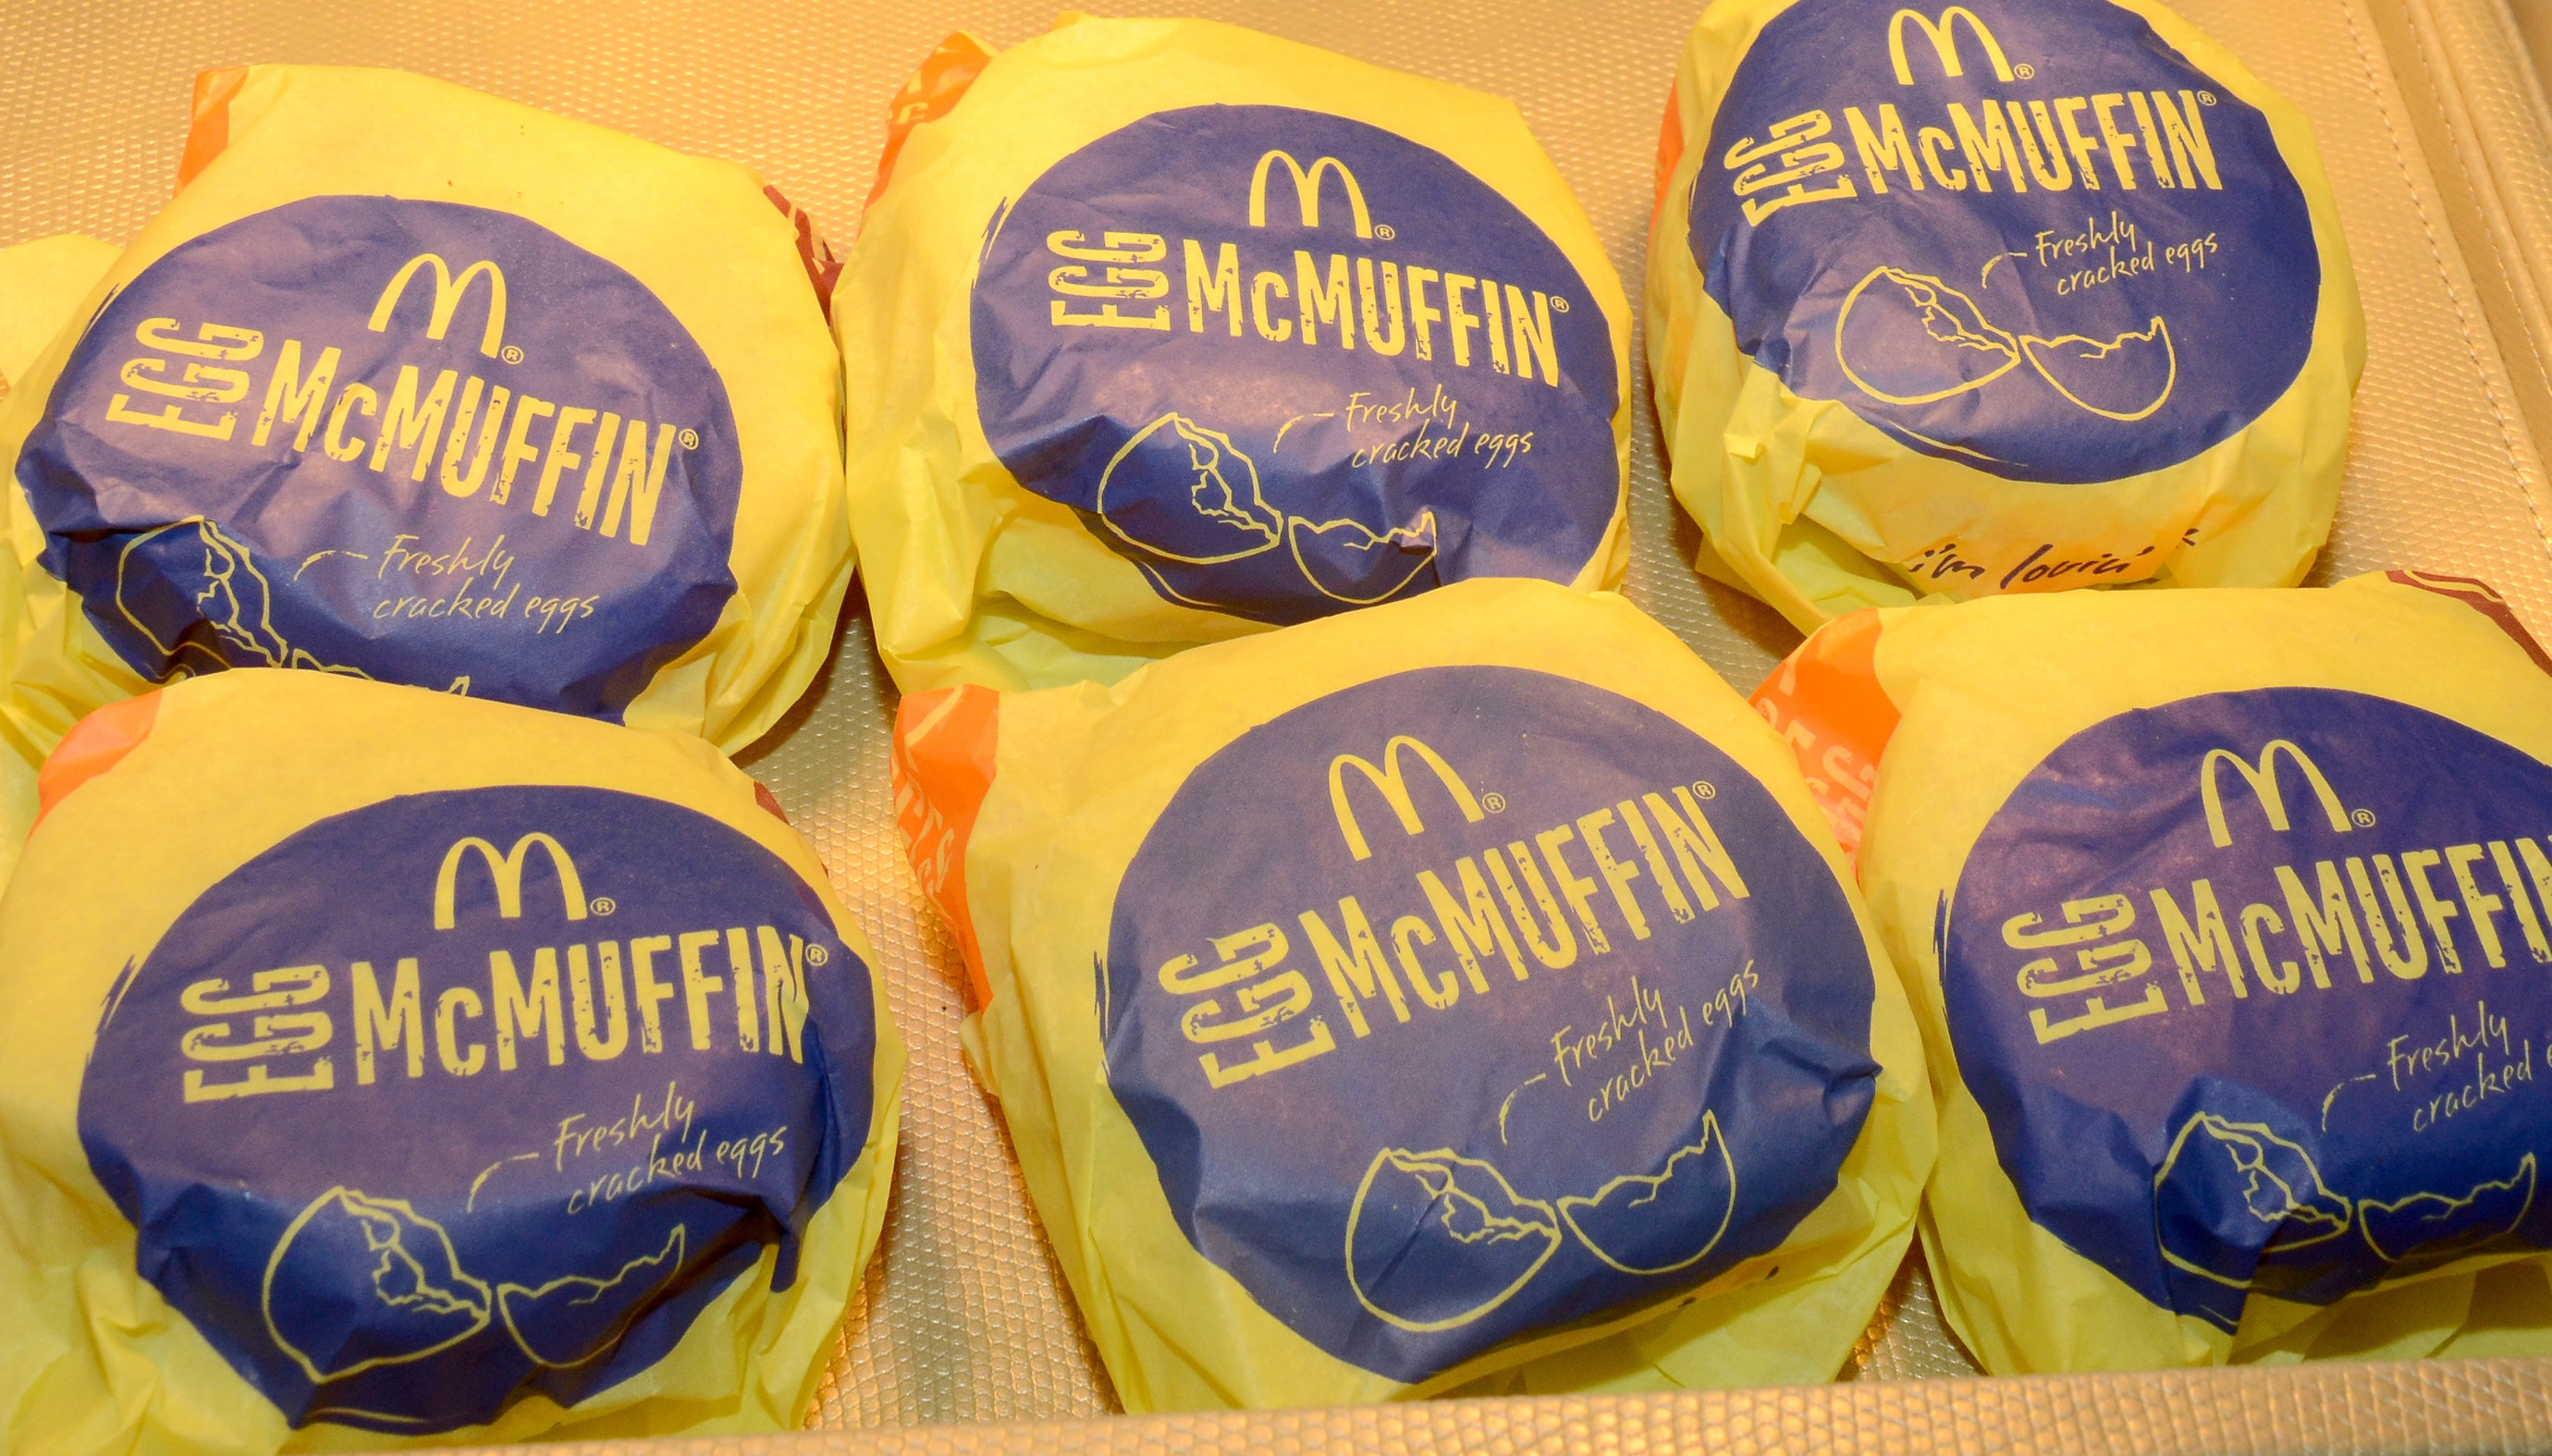 Breakfast All Day Why Mcdonald S Took So Long To Introduce All Day Breakfast In The